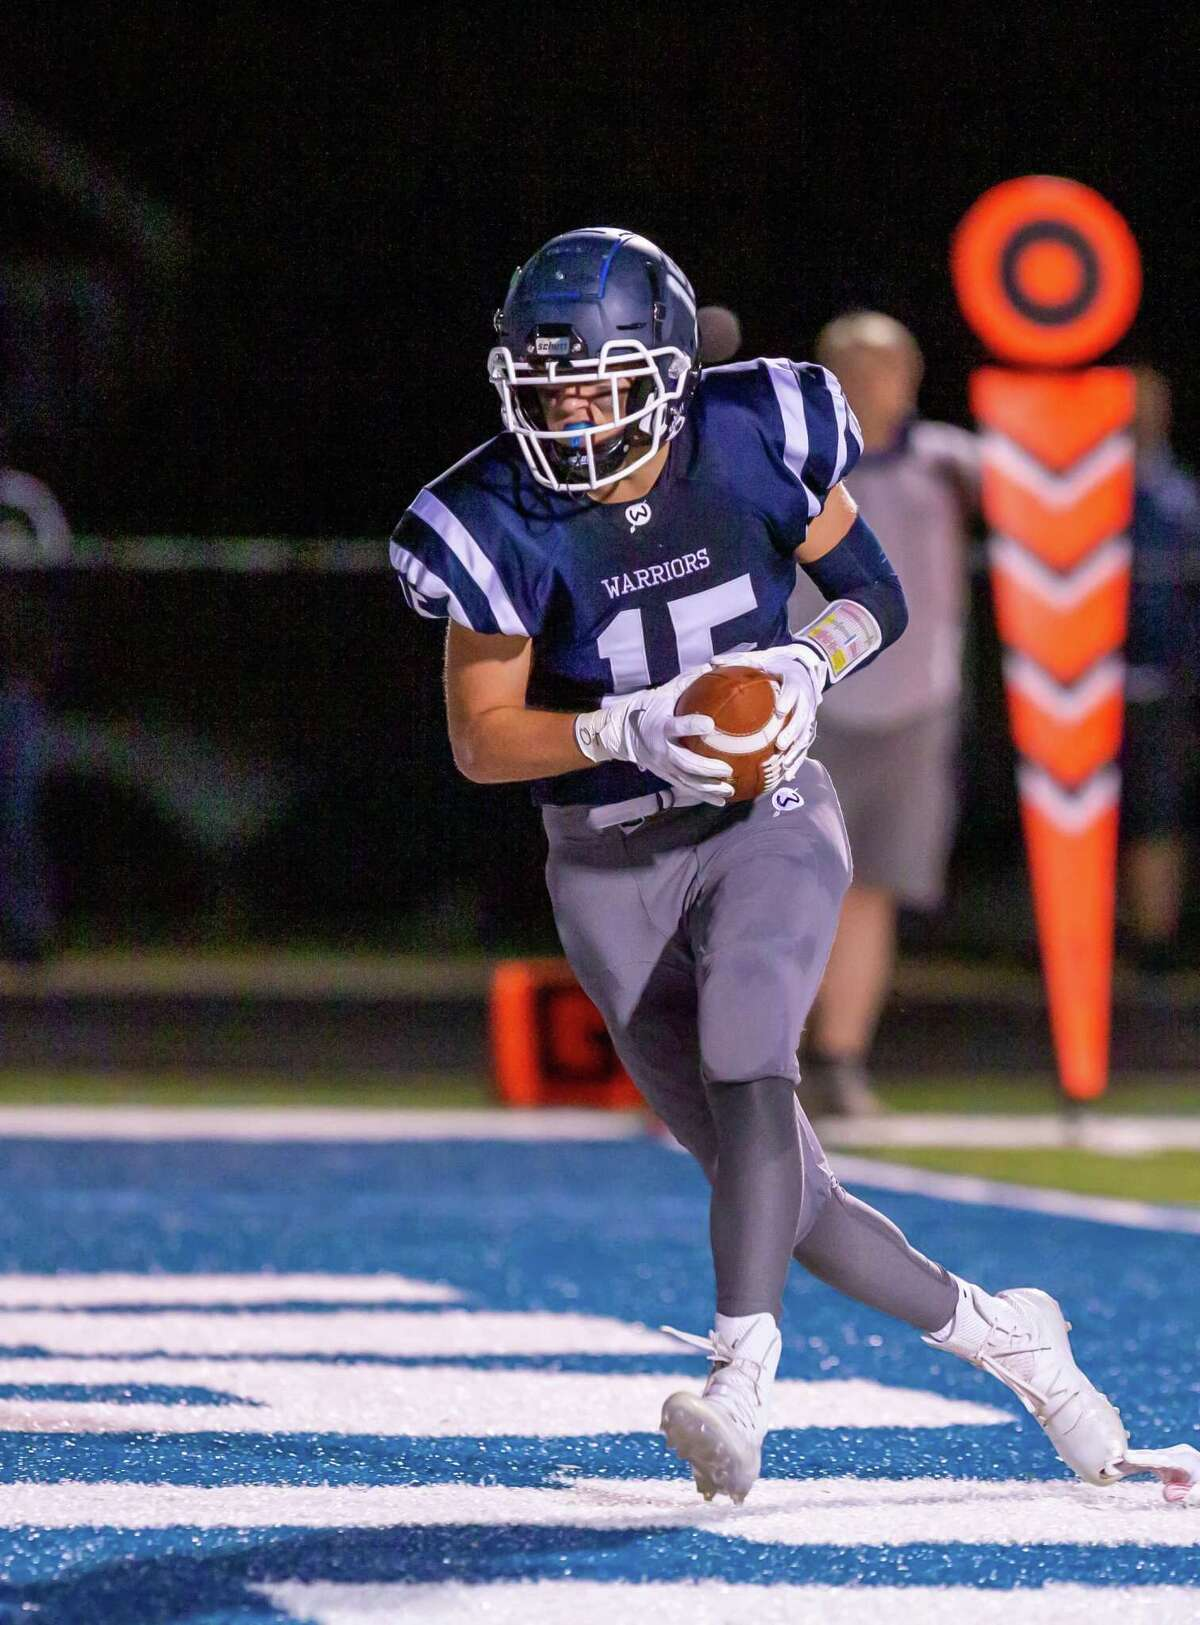 Kyle Hyzy caught two touchdown passes in Wilton's 42-6 win over Fairfield Warde,